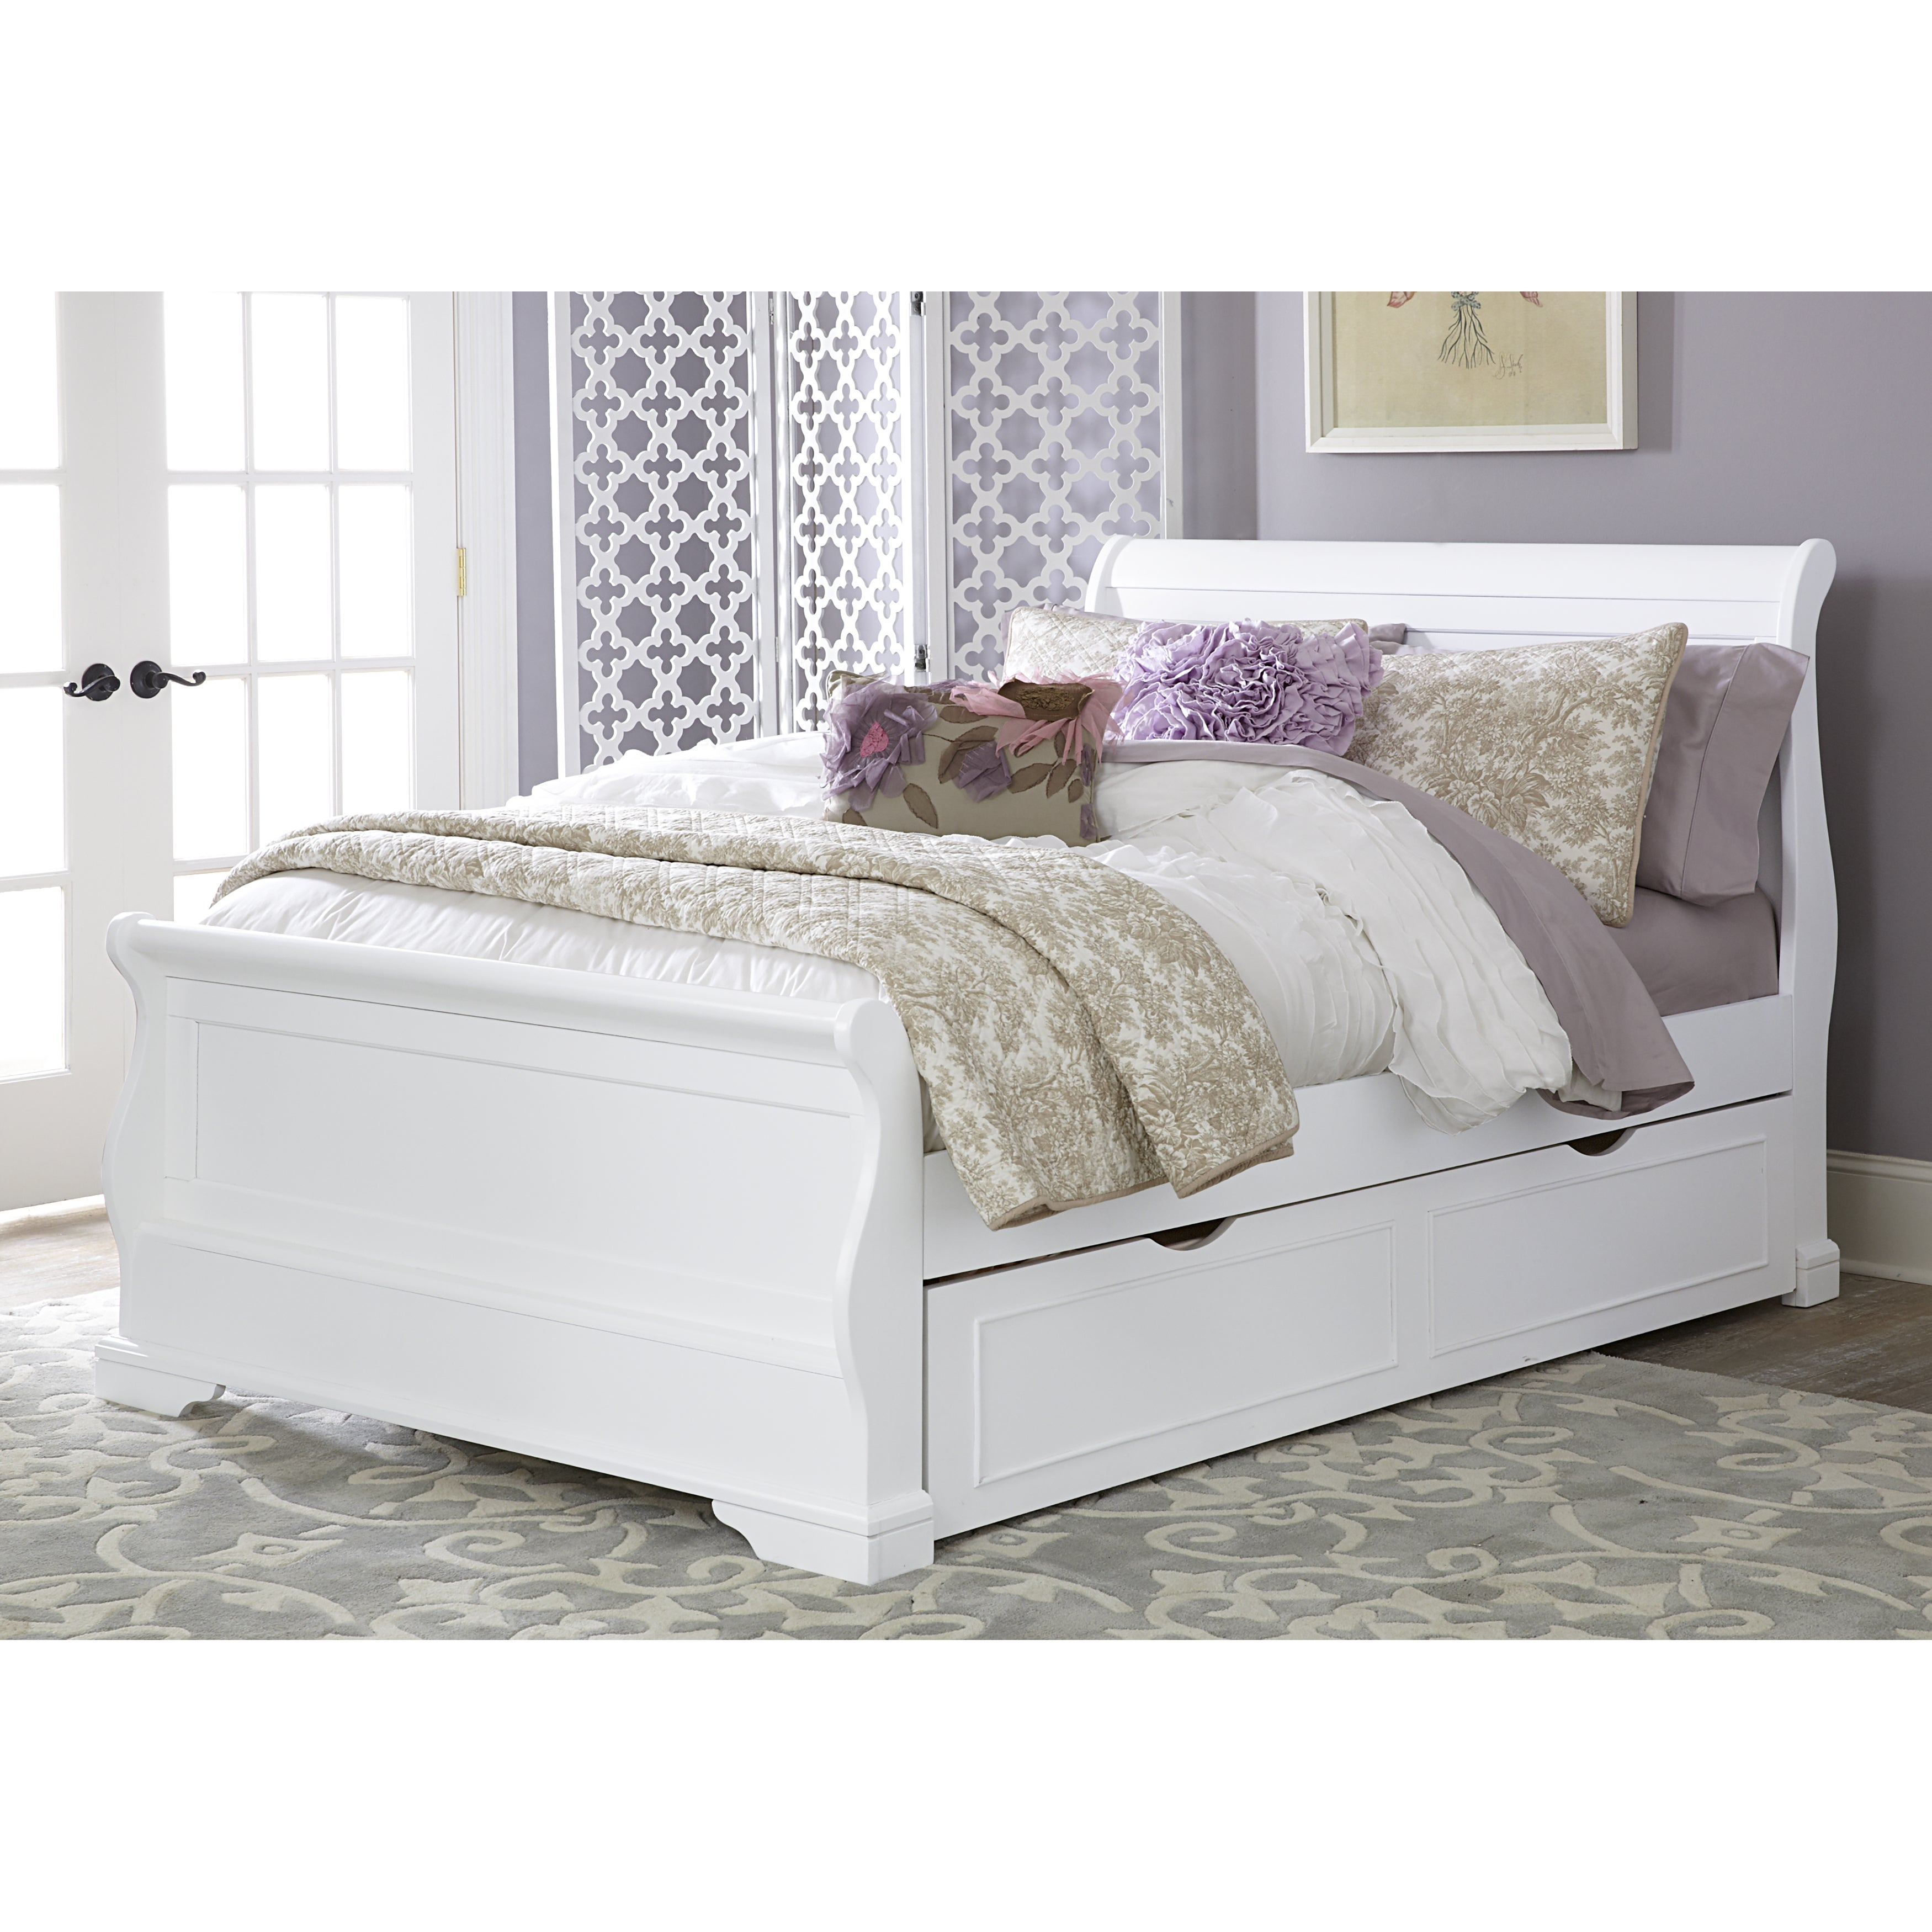 Shop Walnut Street White Wood Full Riley Sleigh Bed With Trundle Overstock 11984466